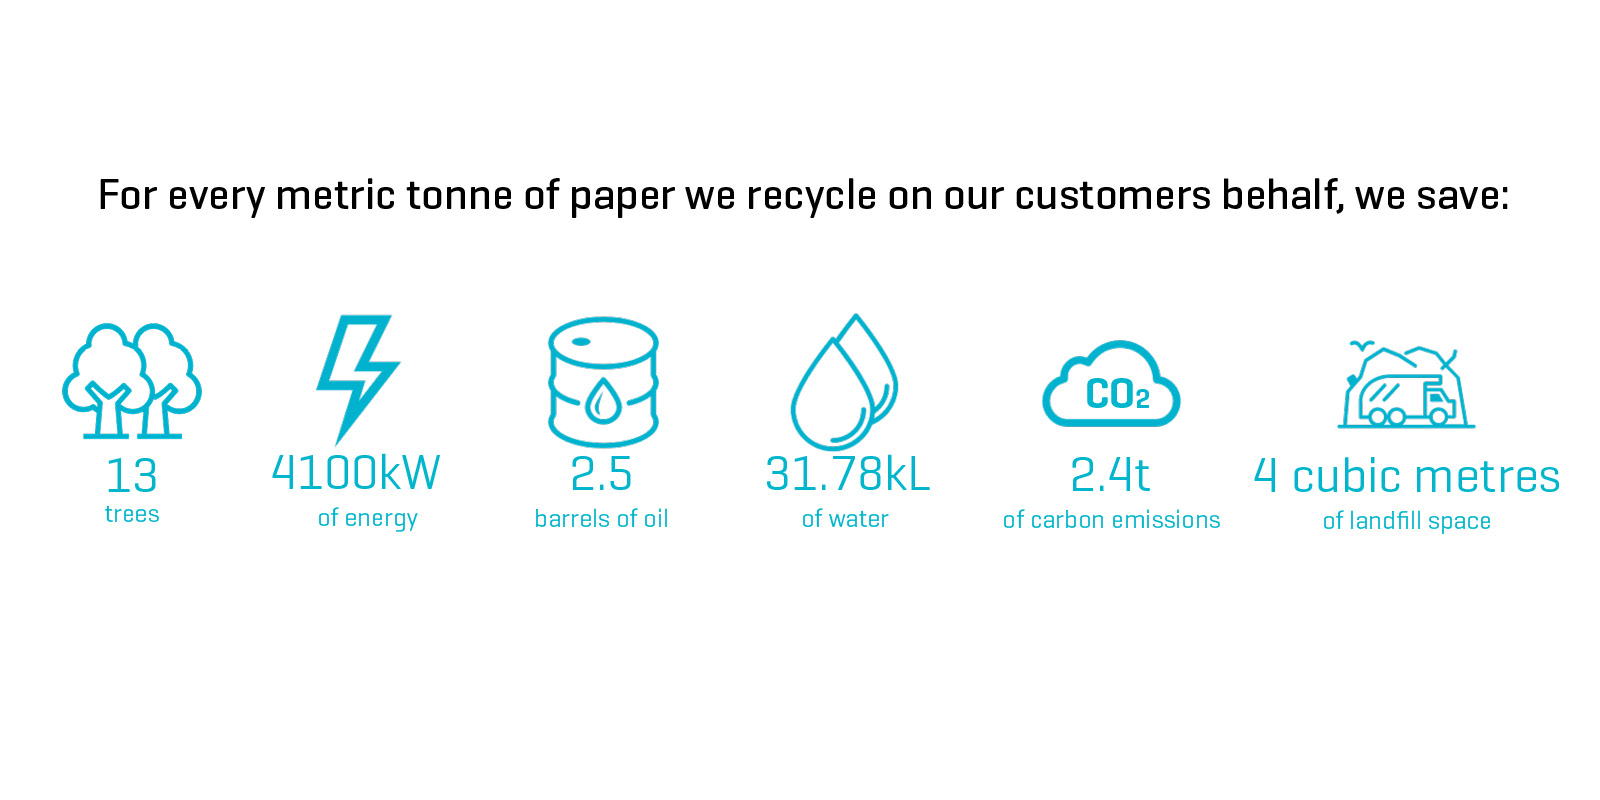 A metric tonne of paper recycled, we save an immense amount of resources.